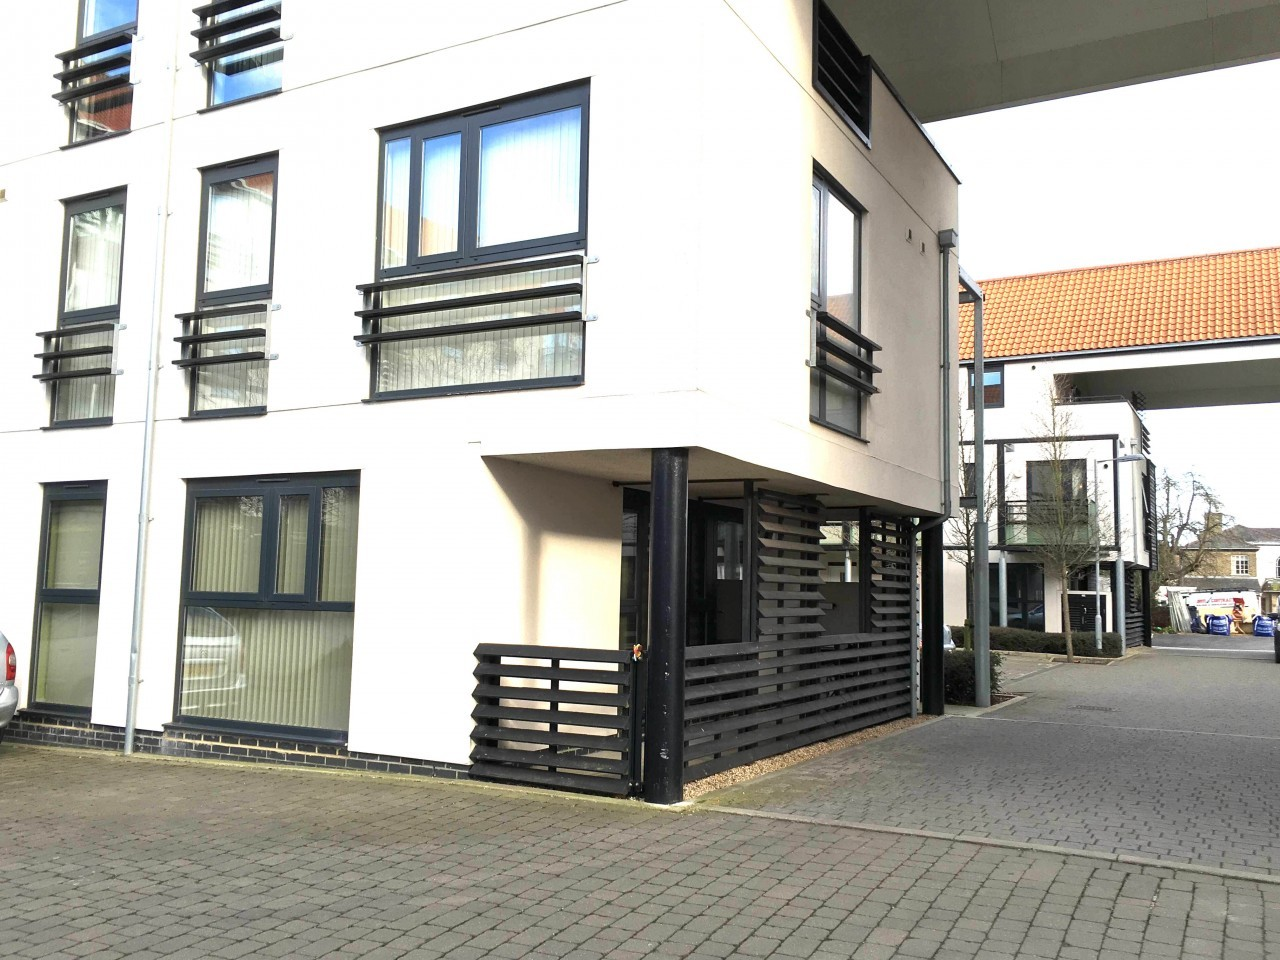 2 Bed 2 Bath First Floor Flat Contemporary Only 10